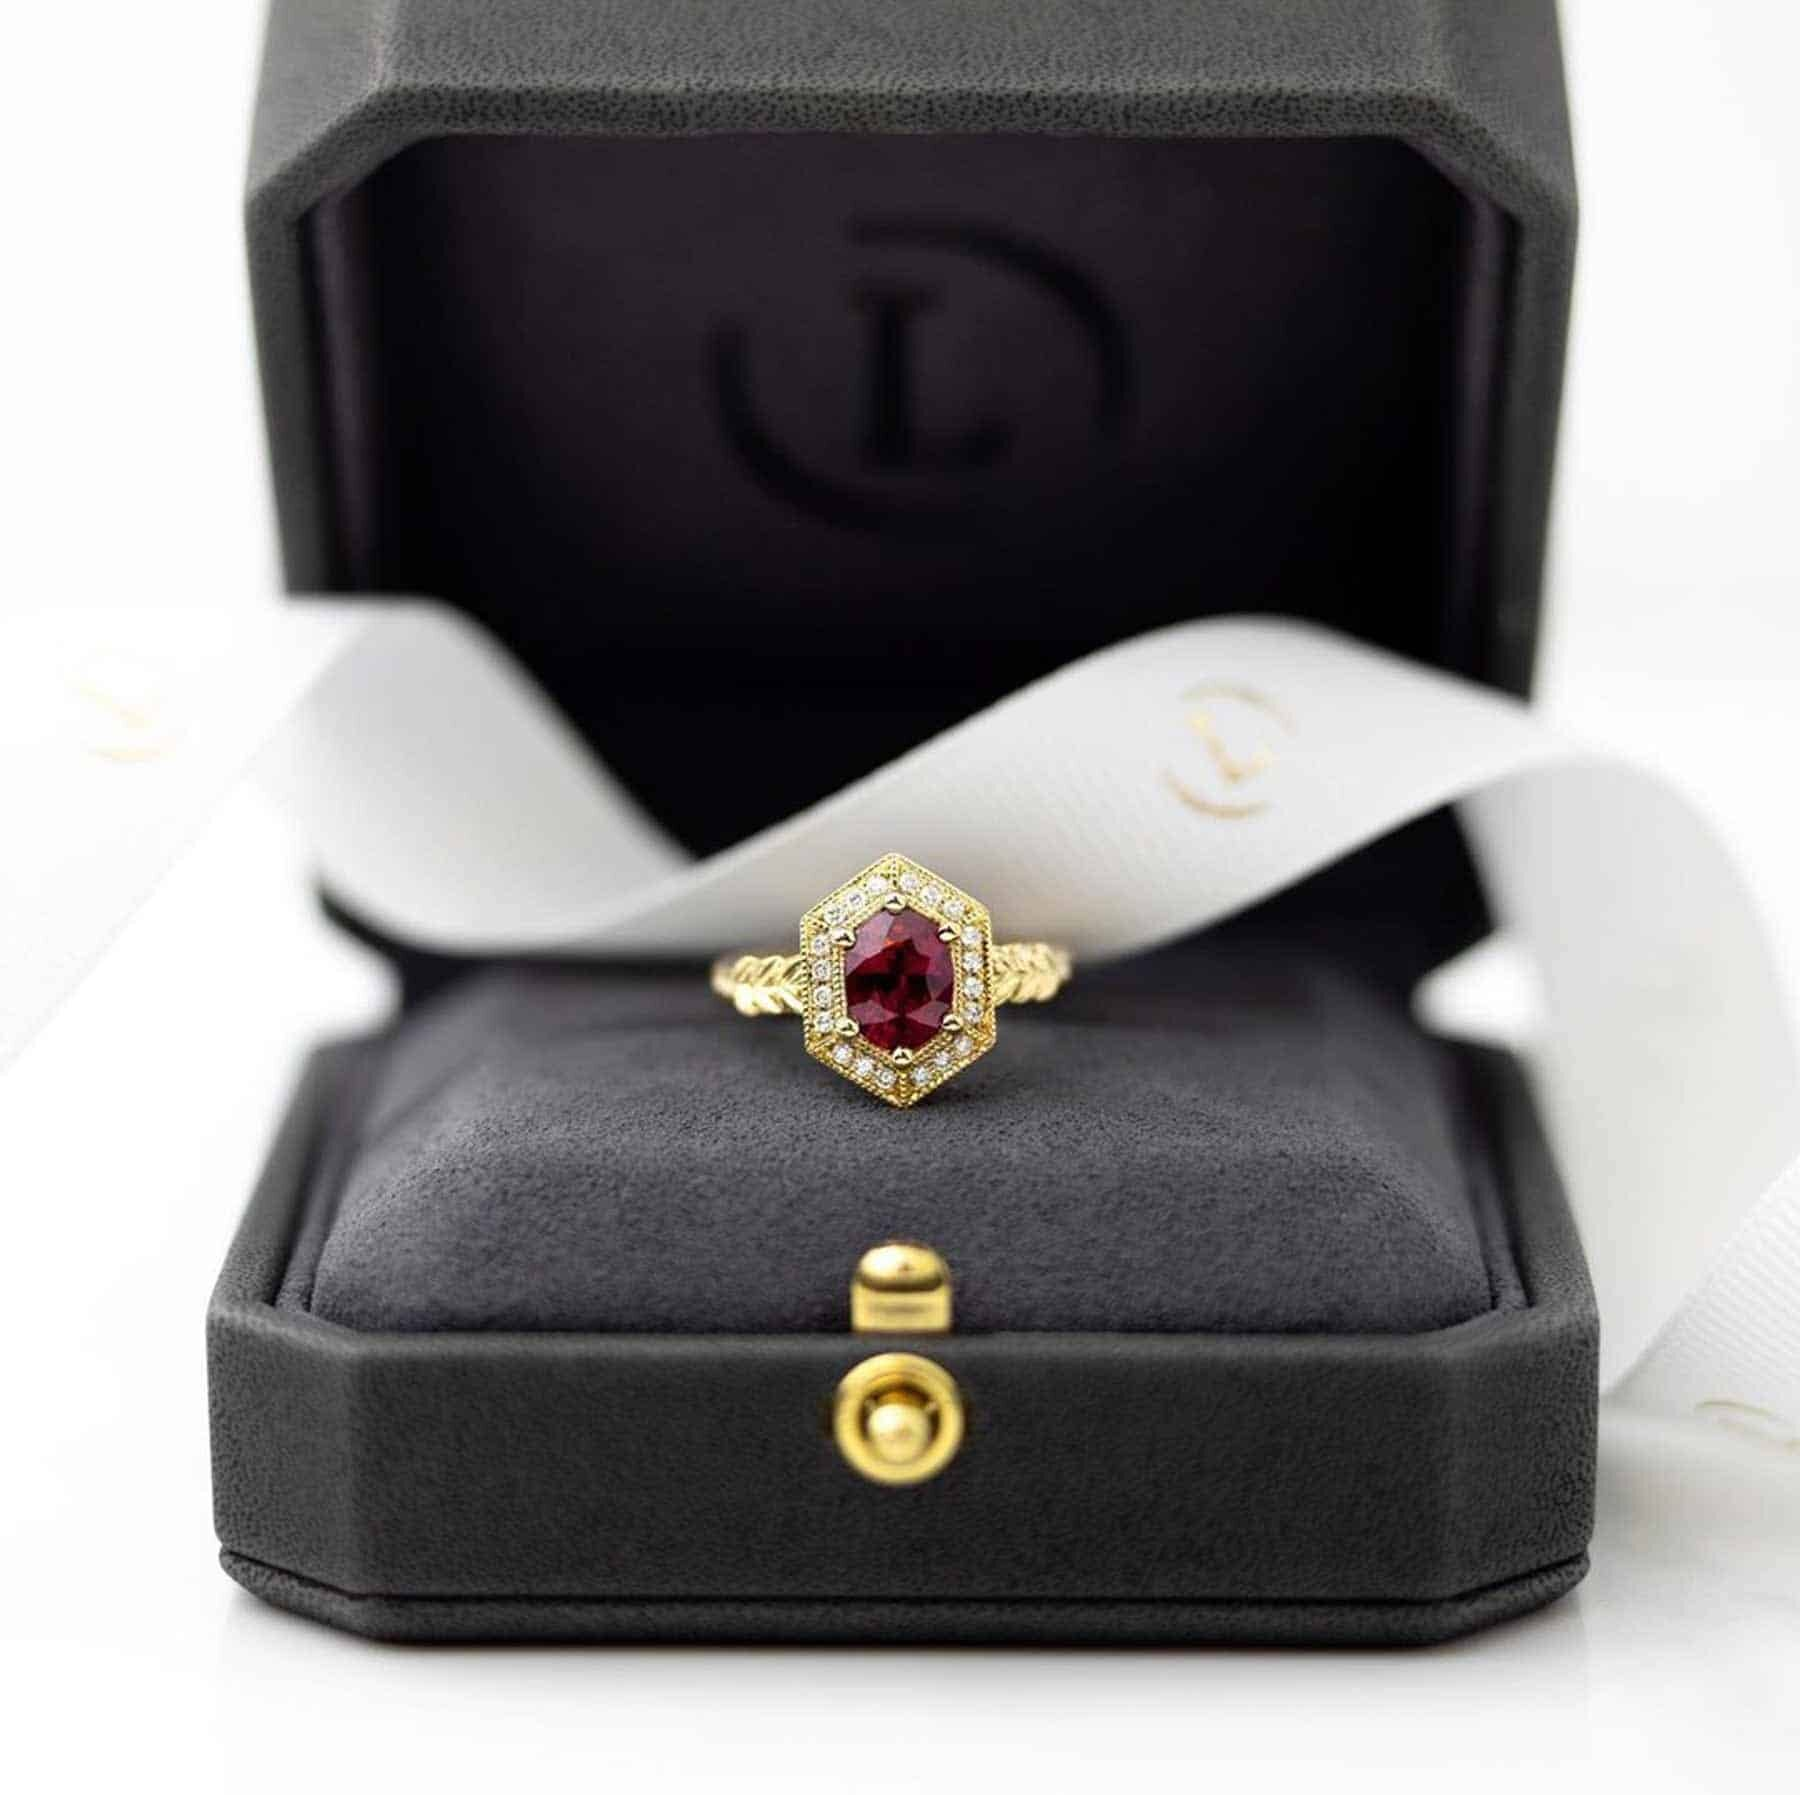 Larsen fine jewellery and ethical engagement rings